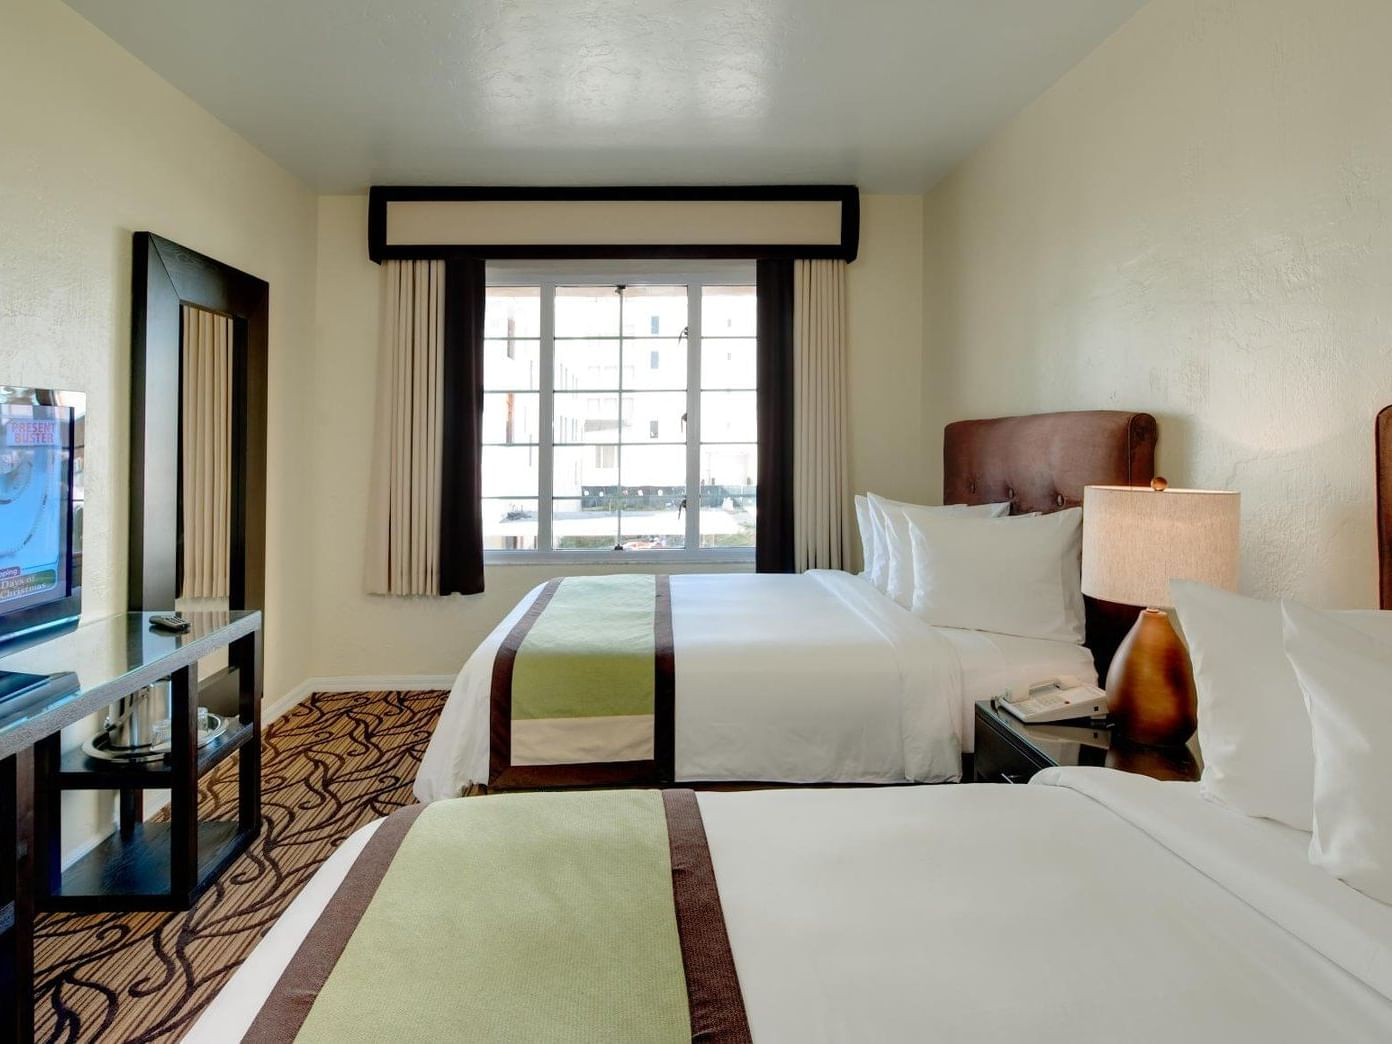 A view of Deluxe Double room with two double beds at Essex House by Clevelander